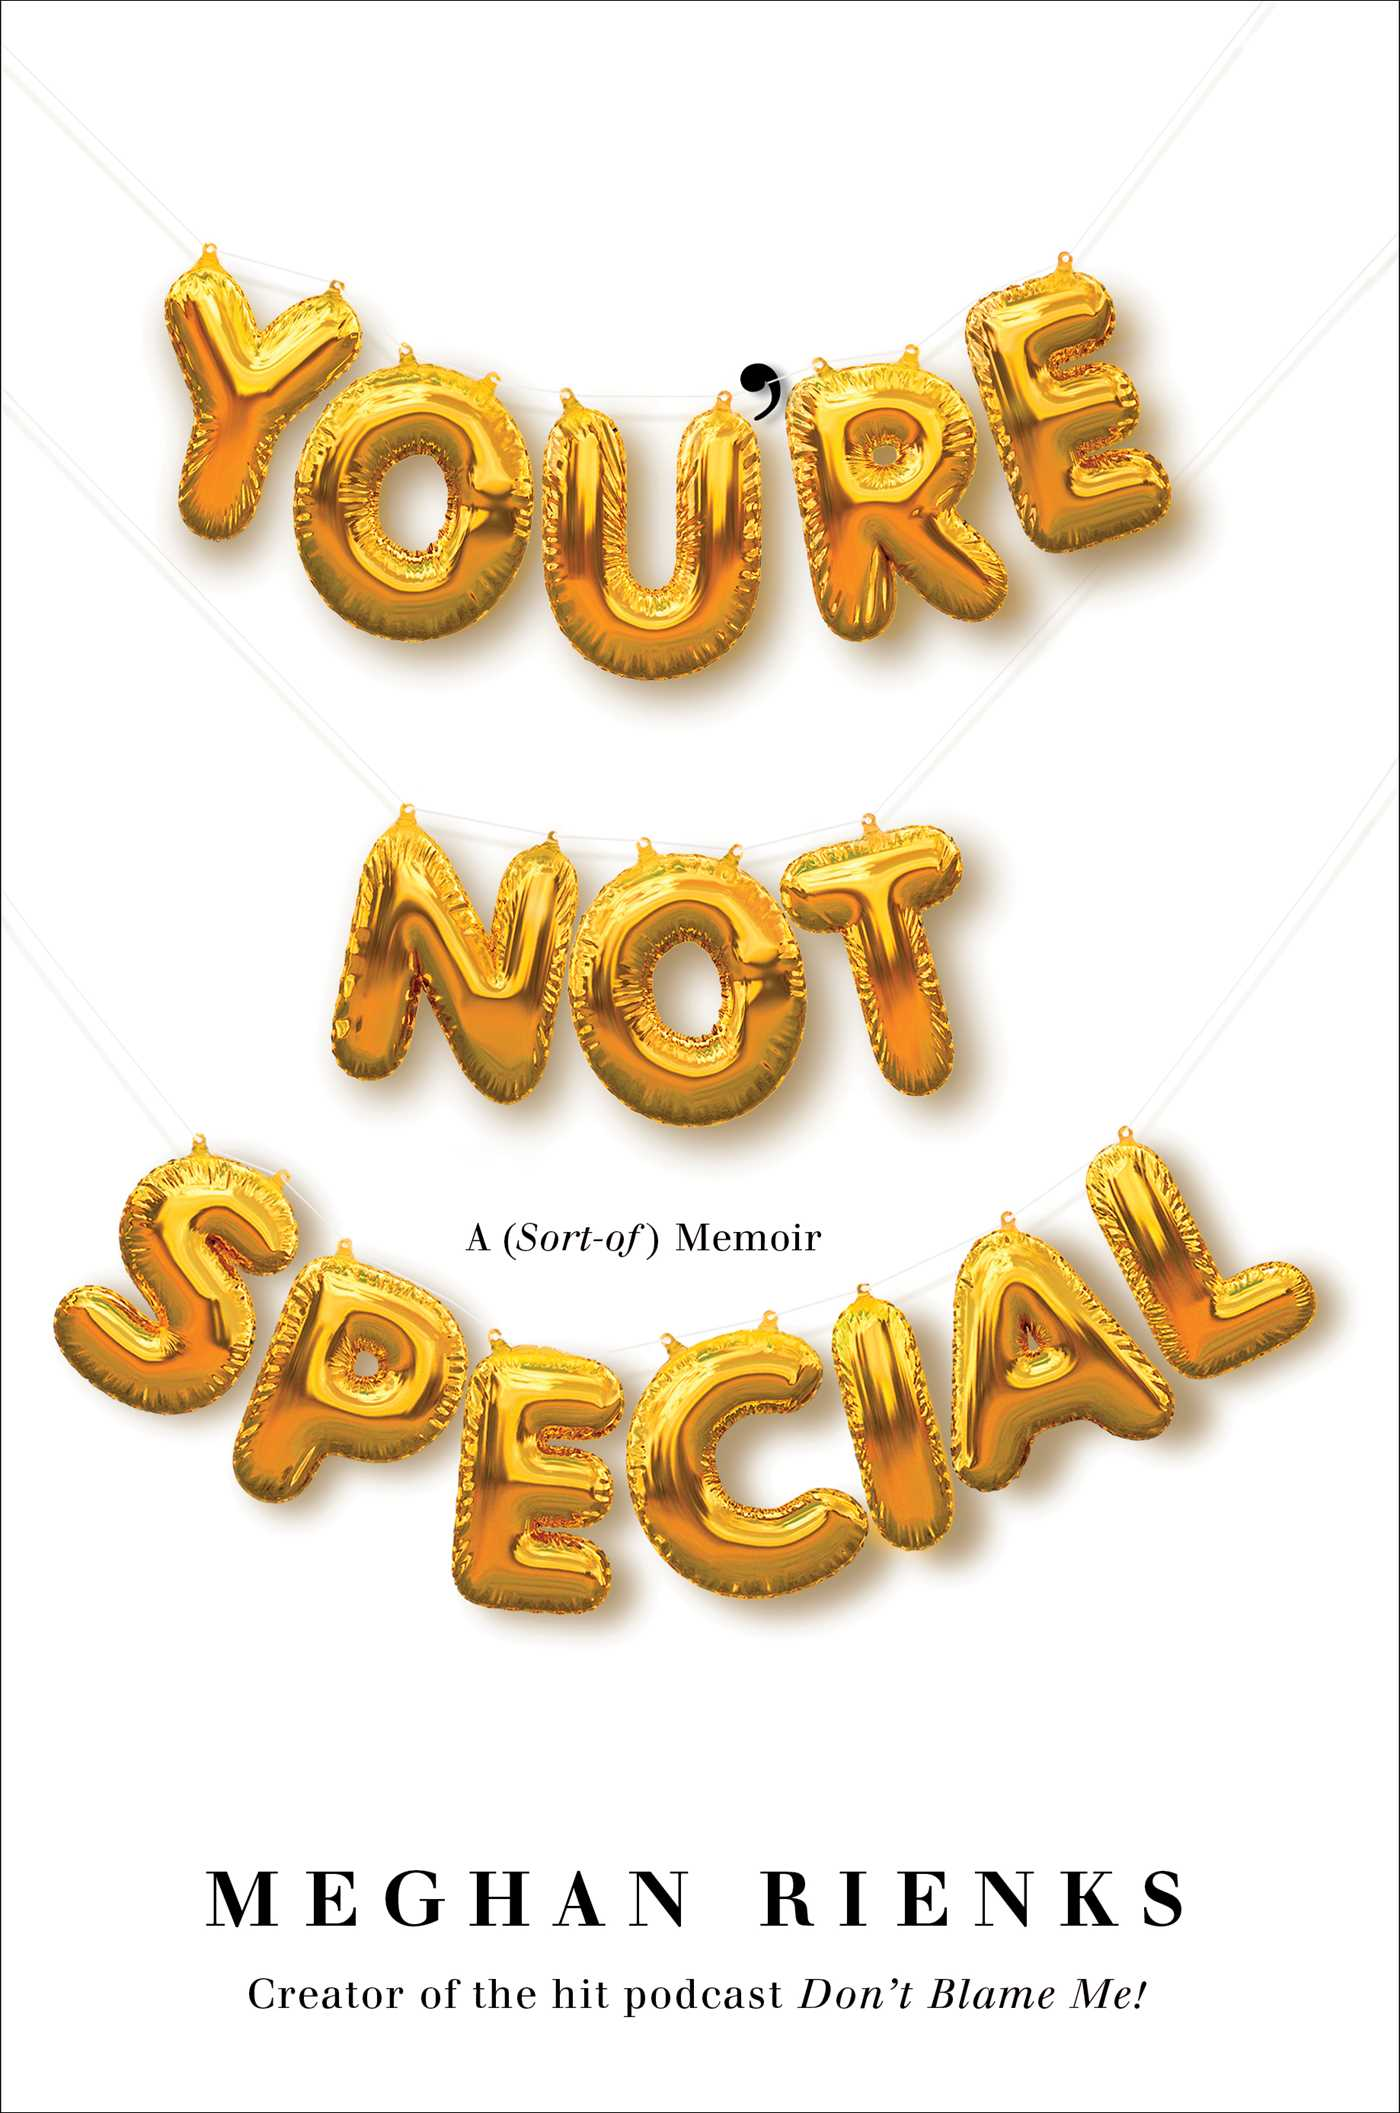 You're Not Special - Meghan Rienks